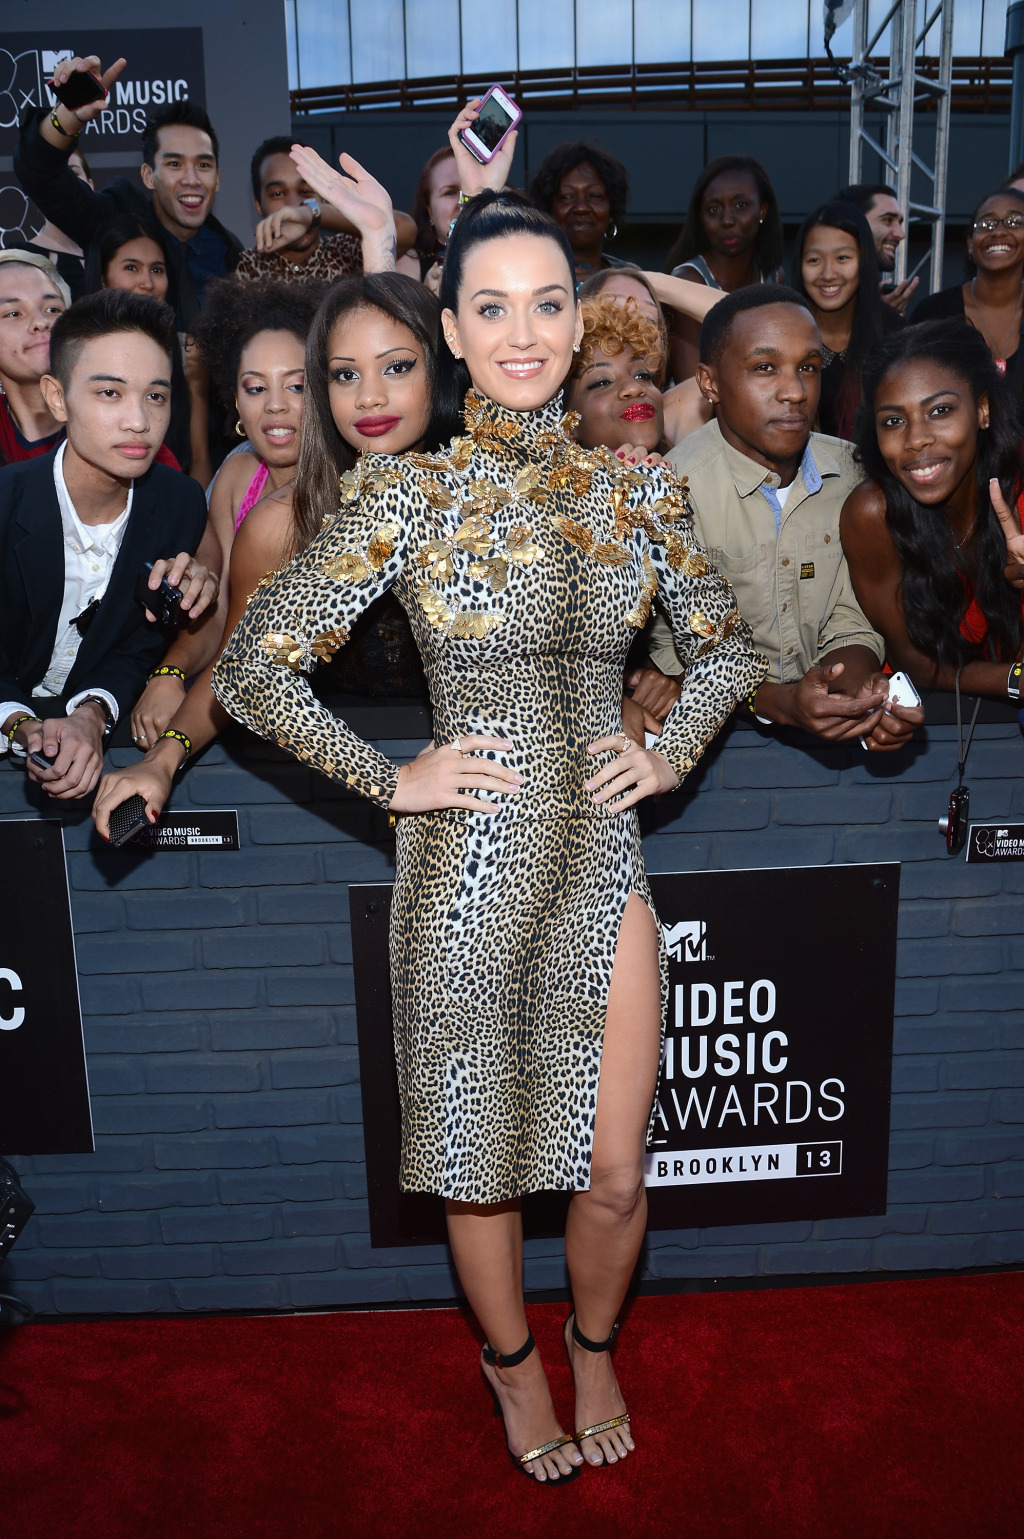 katy perry mtv vma 2013